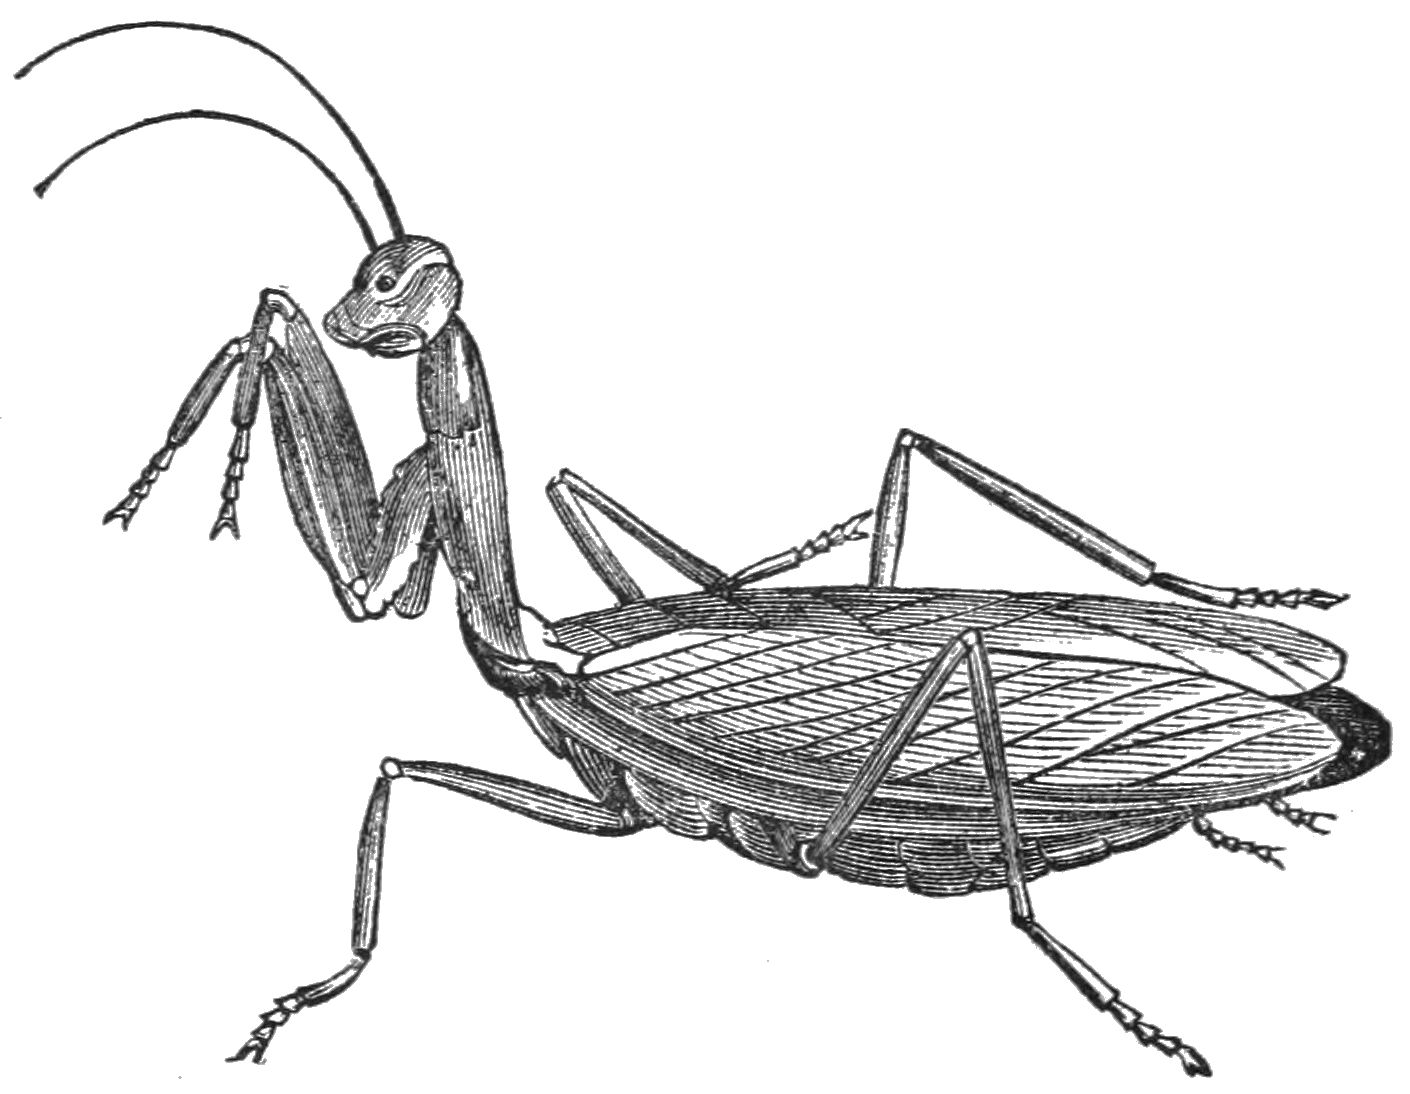 PSM V37 D547 Mantis religiosa with head raised.jpg